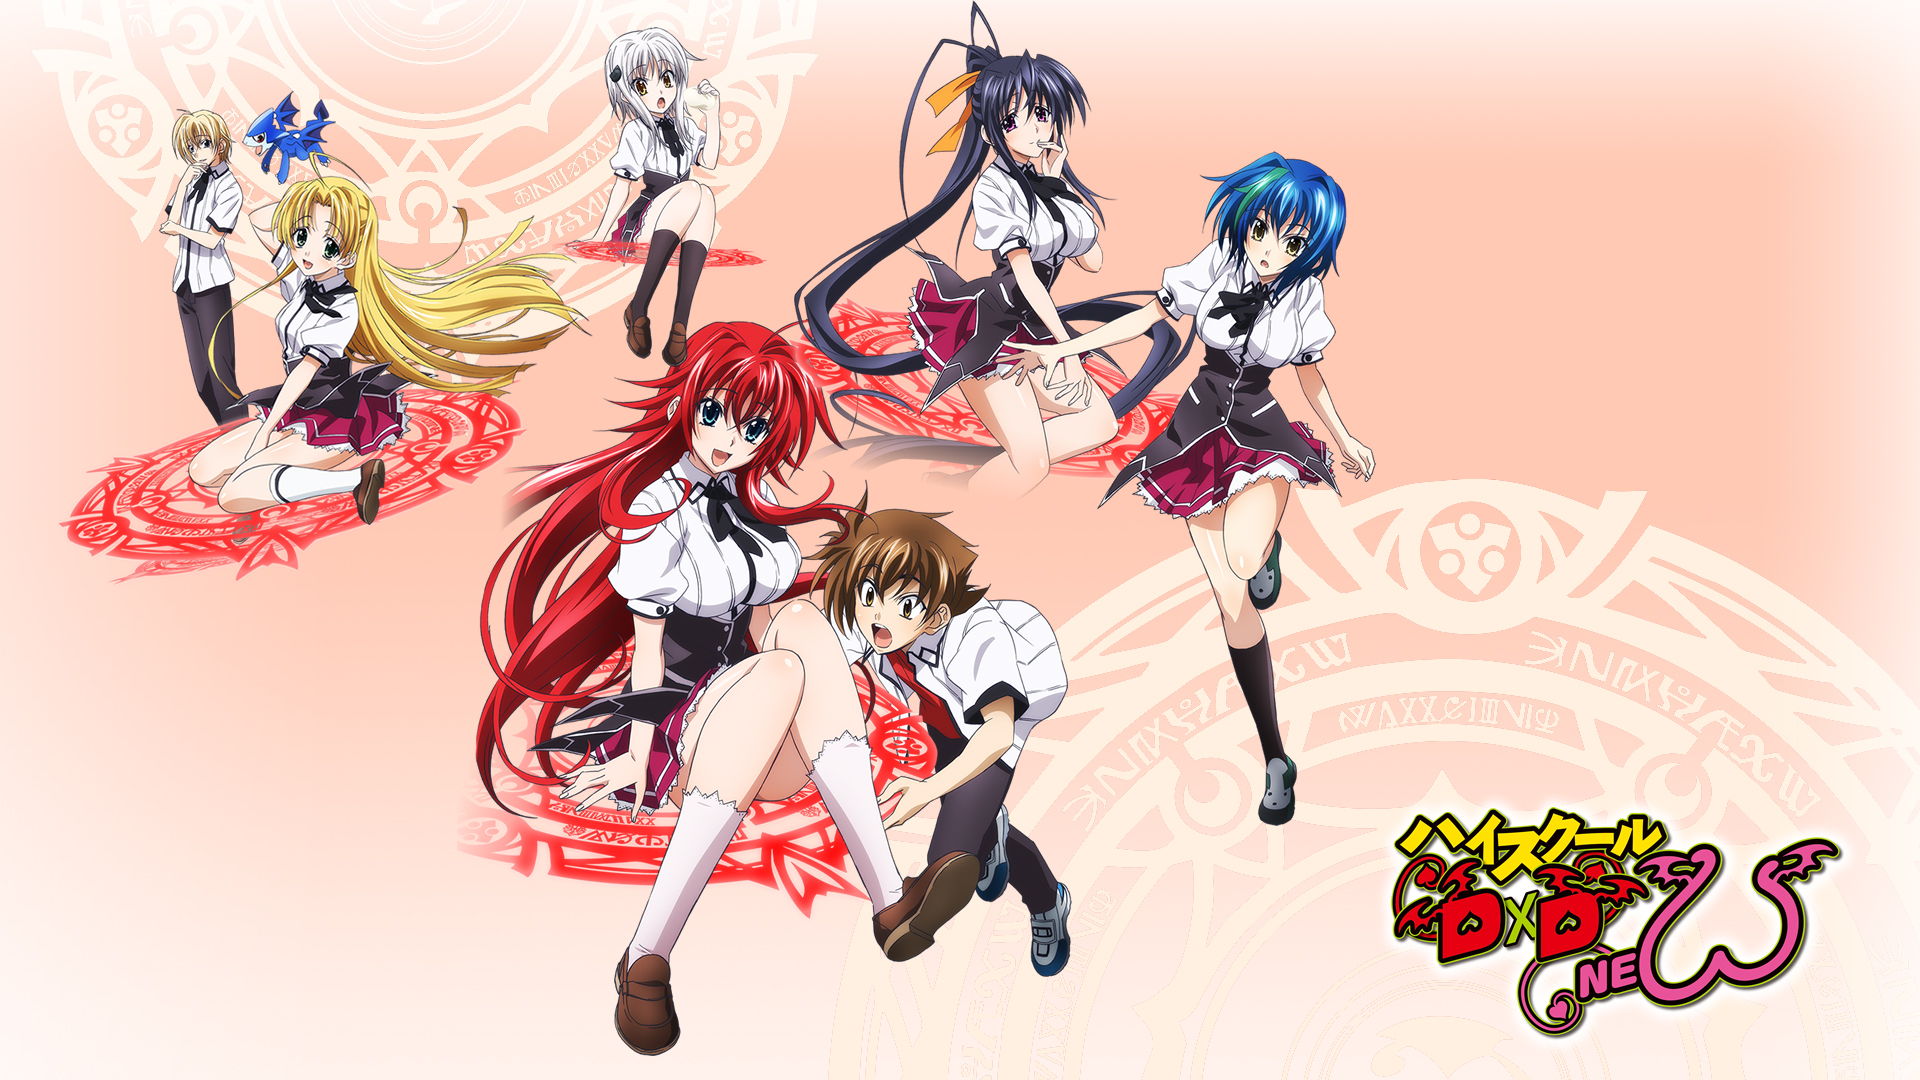 http://images2.wikia.nocookie.net/__cb20130406170156/highschooldxd/images/8/8c/Highschool_dxd_new_wallpaper.jpg